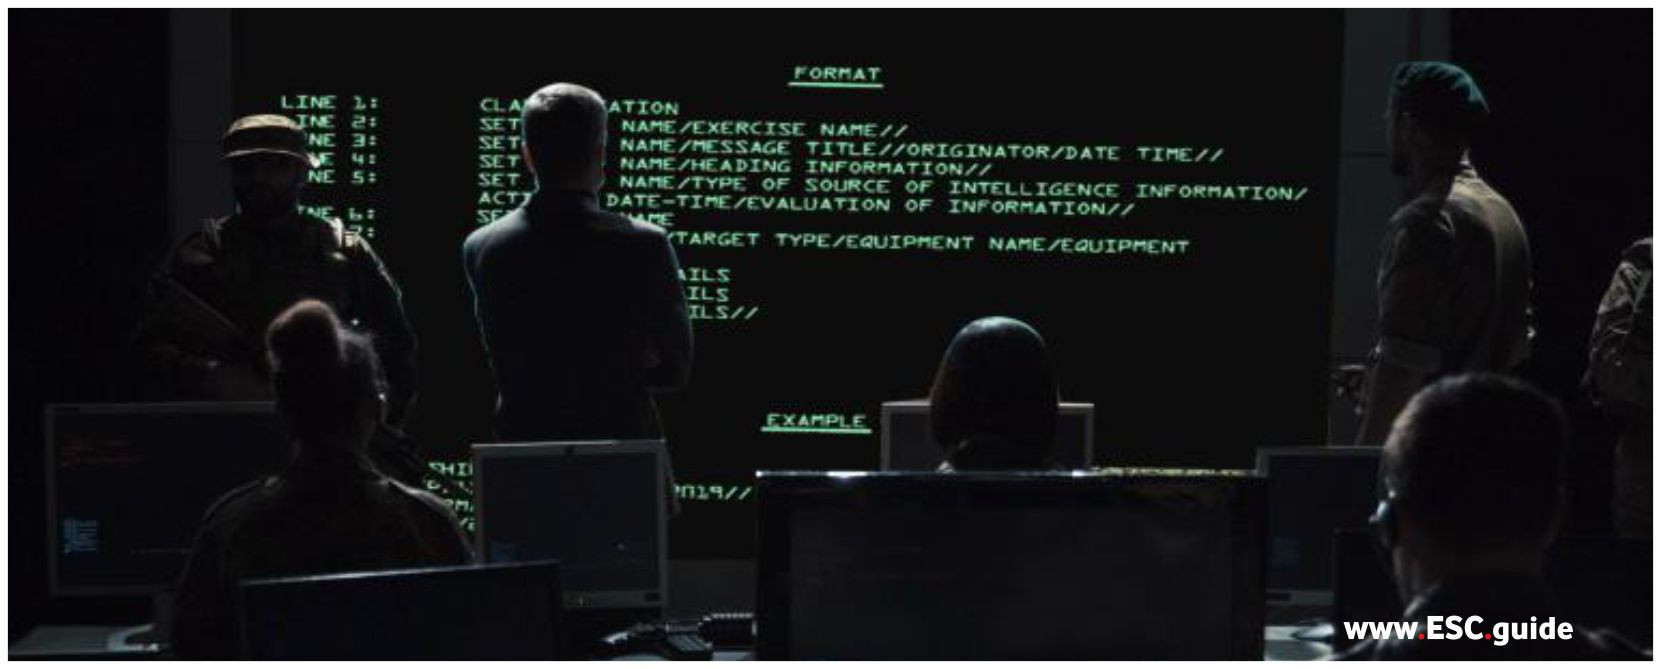 Military message is displayed on screen at fleet command.